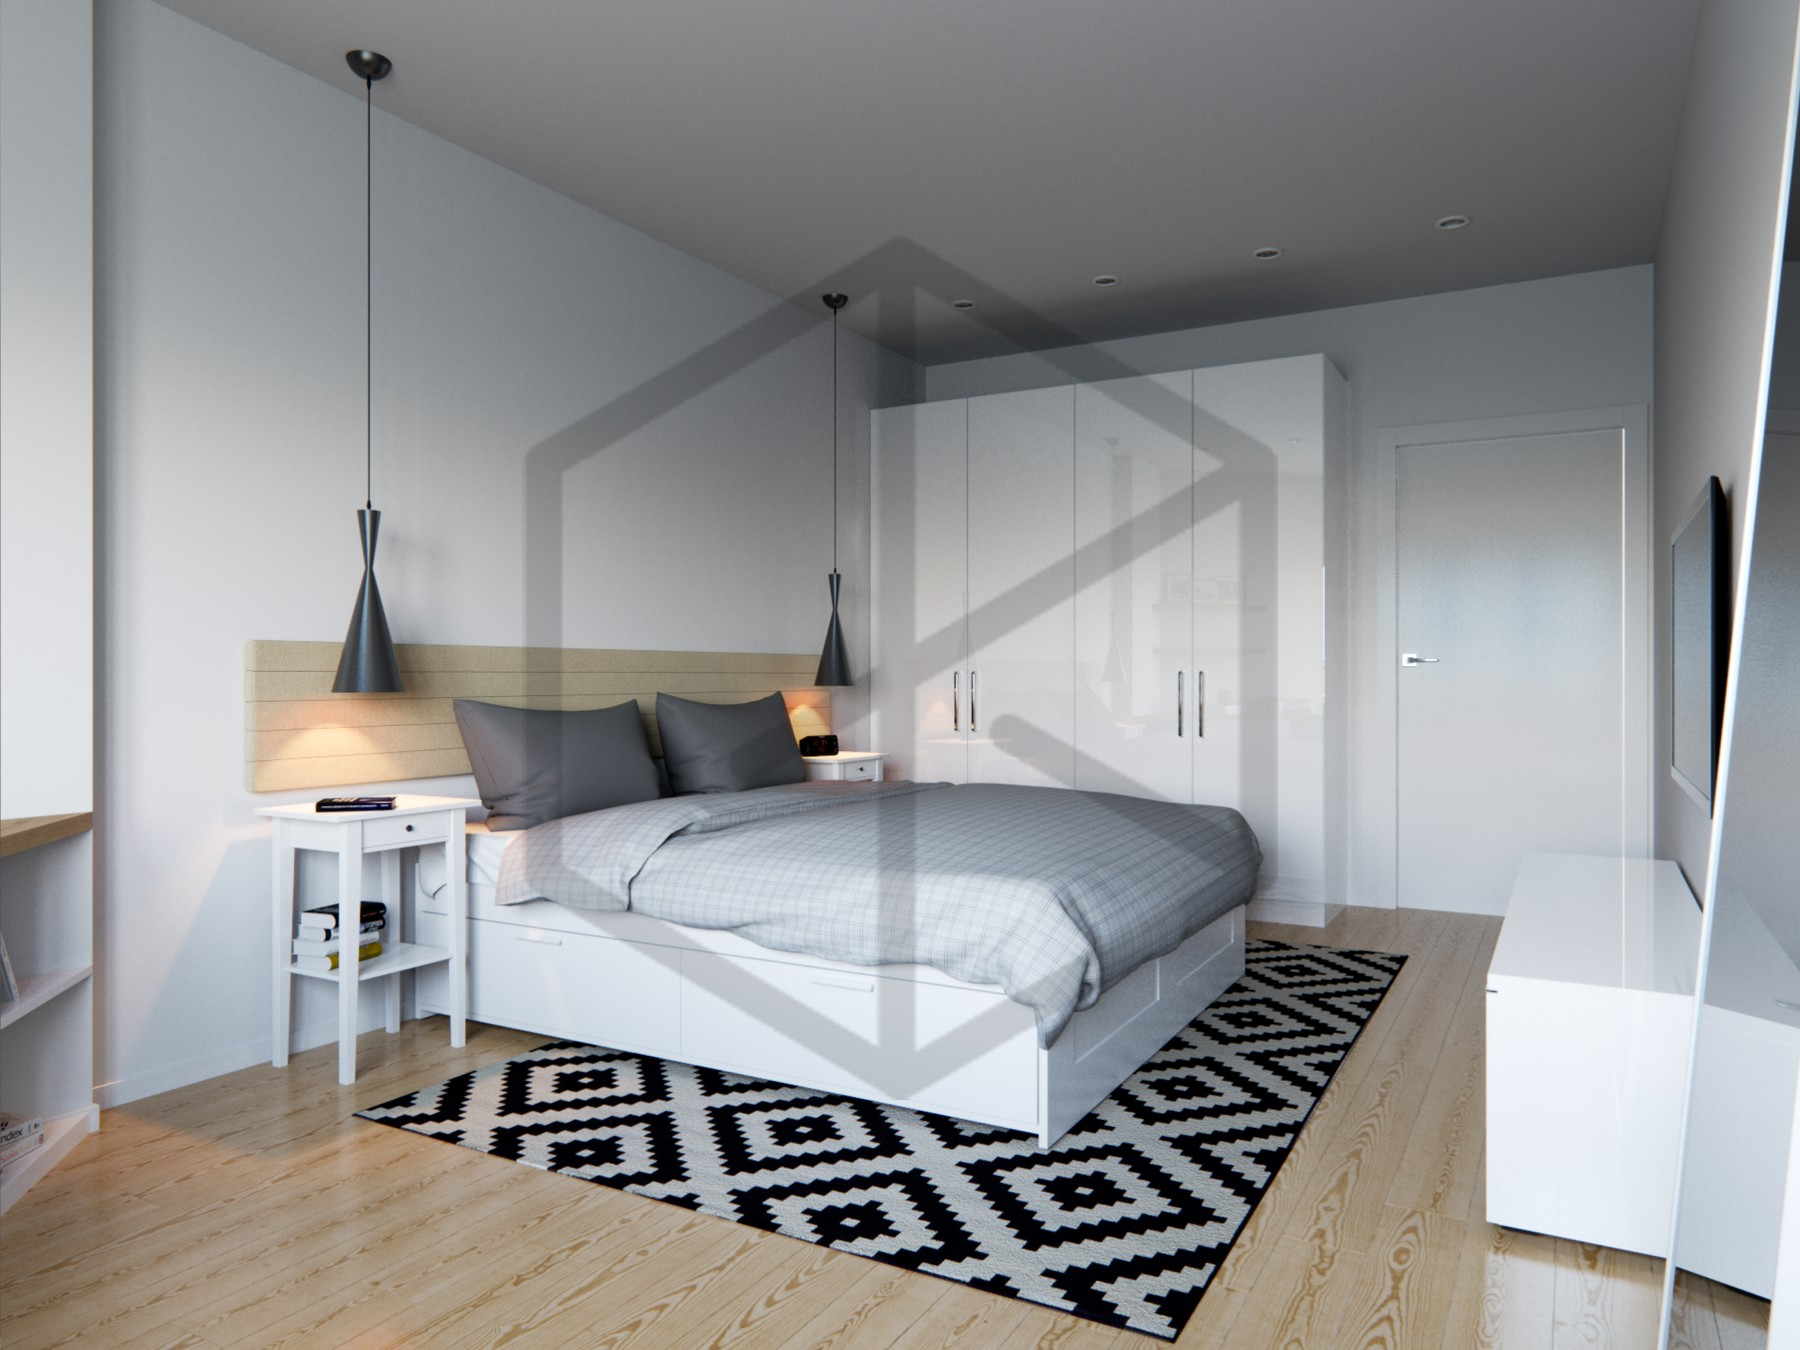 Bedroom-Scandinavian-interior-design-скандинавский-дизайн